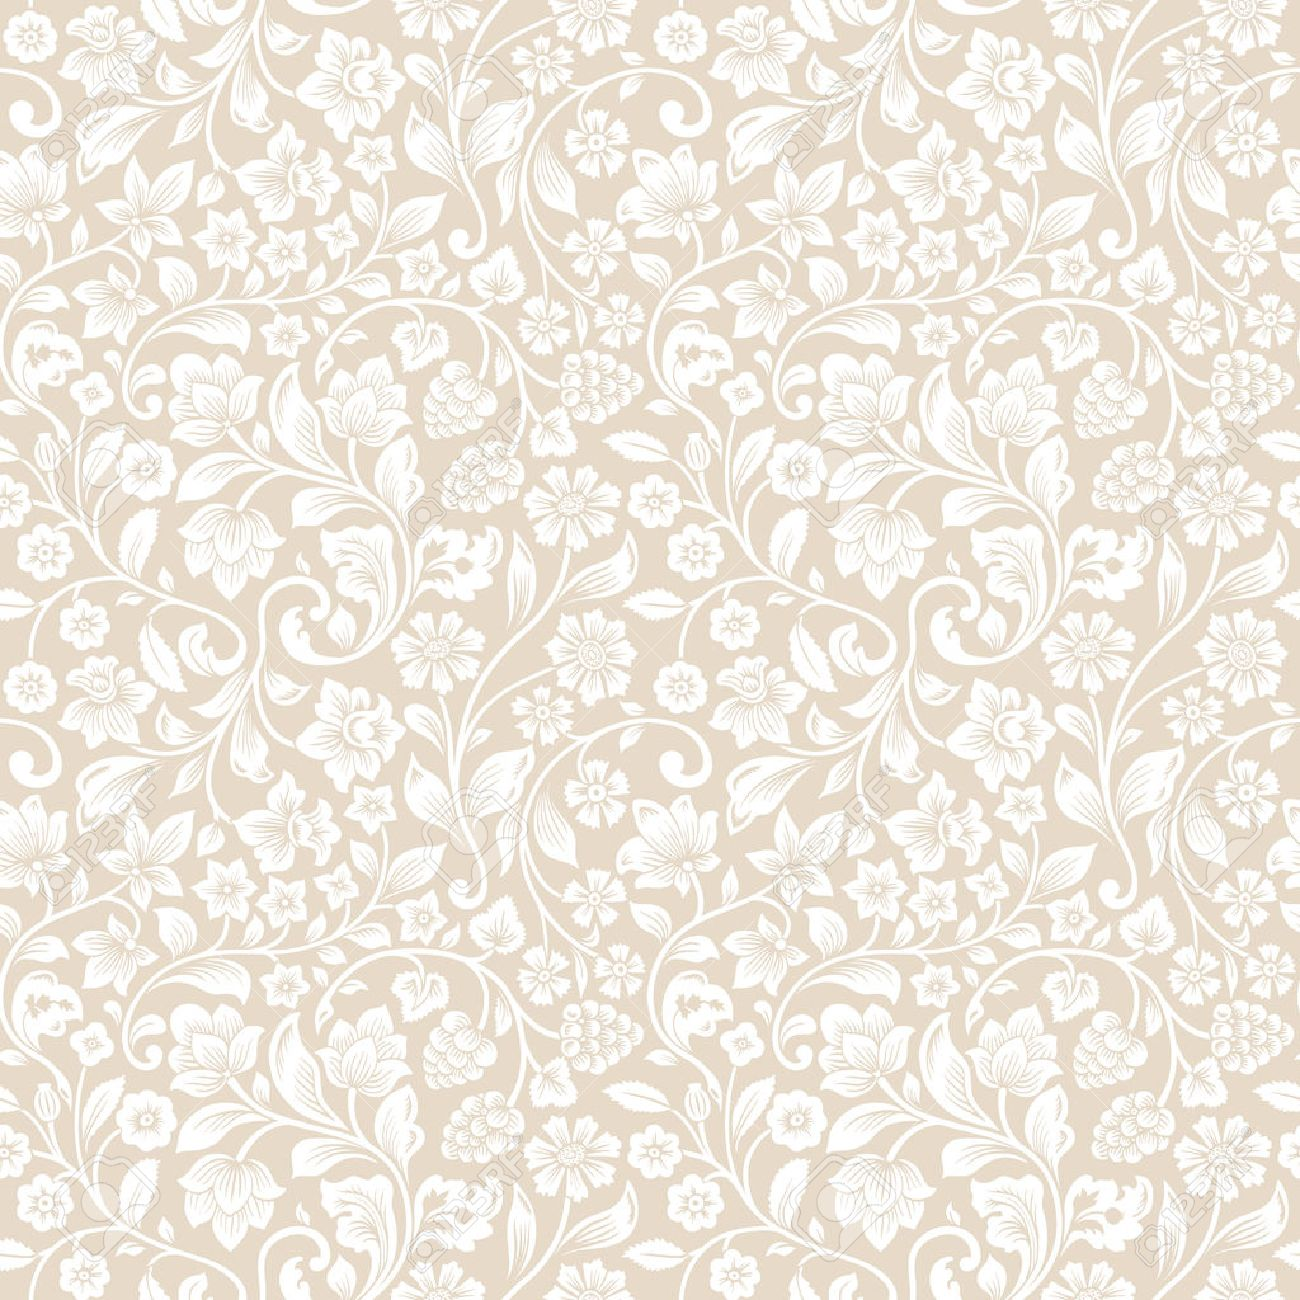 Vector Seamless Vintage Floral Pattern Stylized Silhouettes